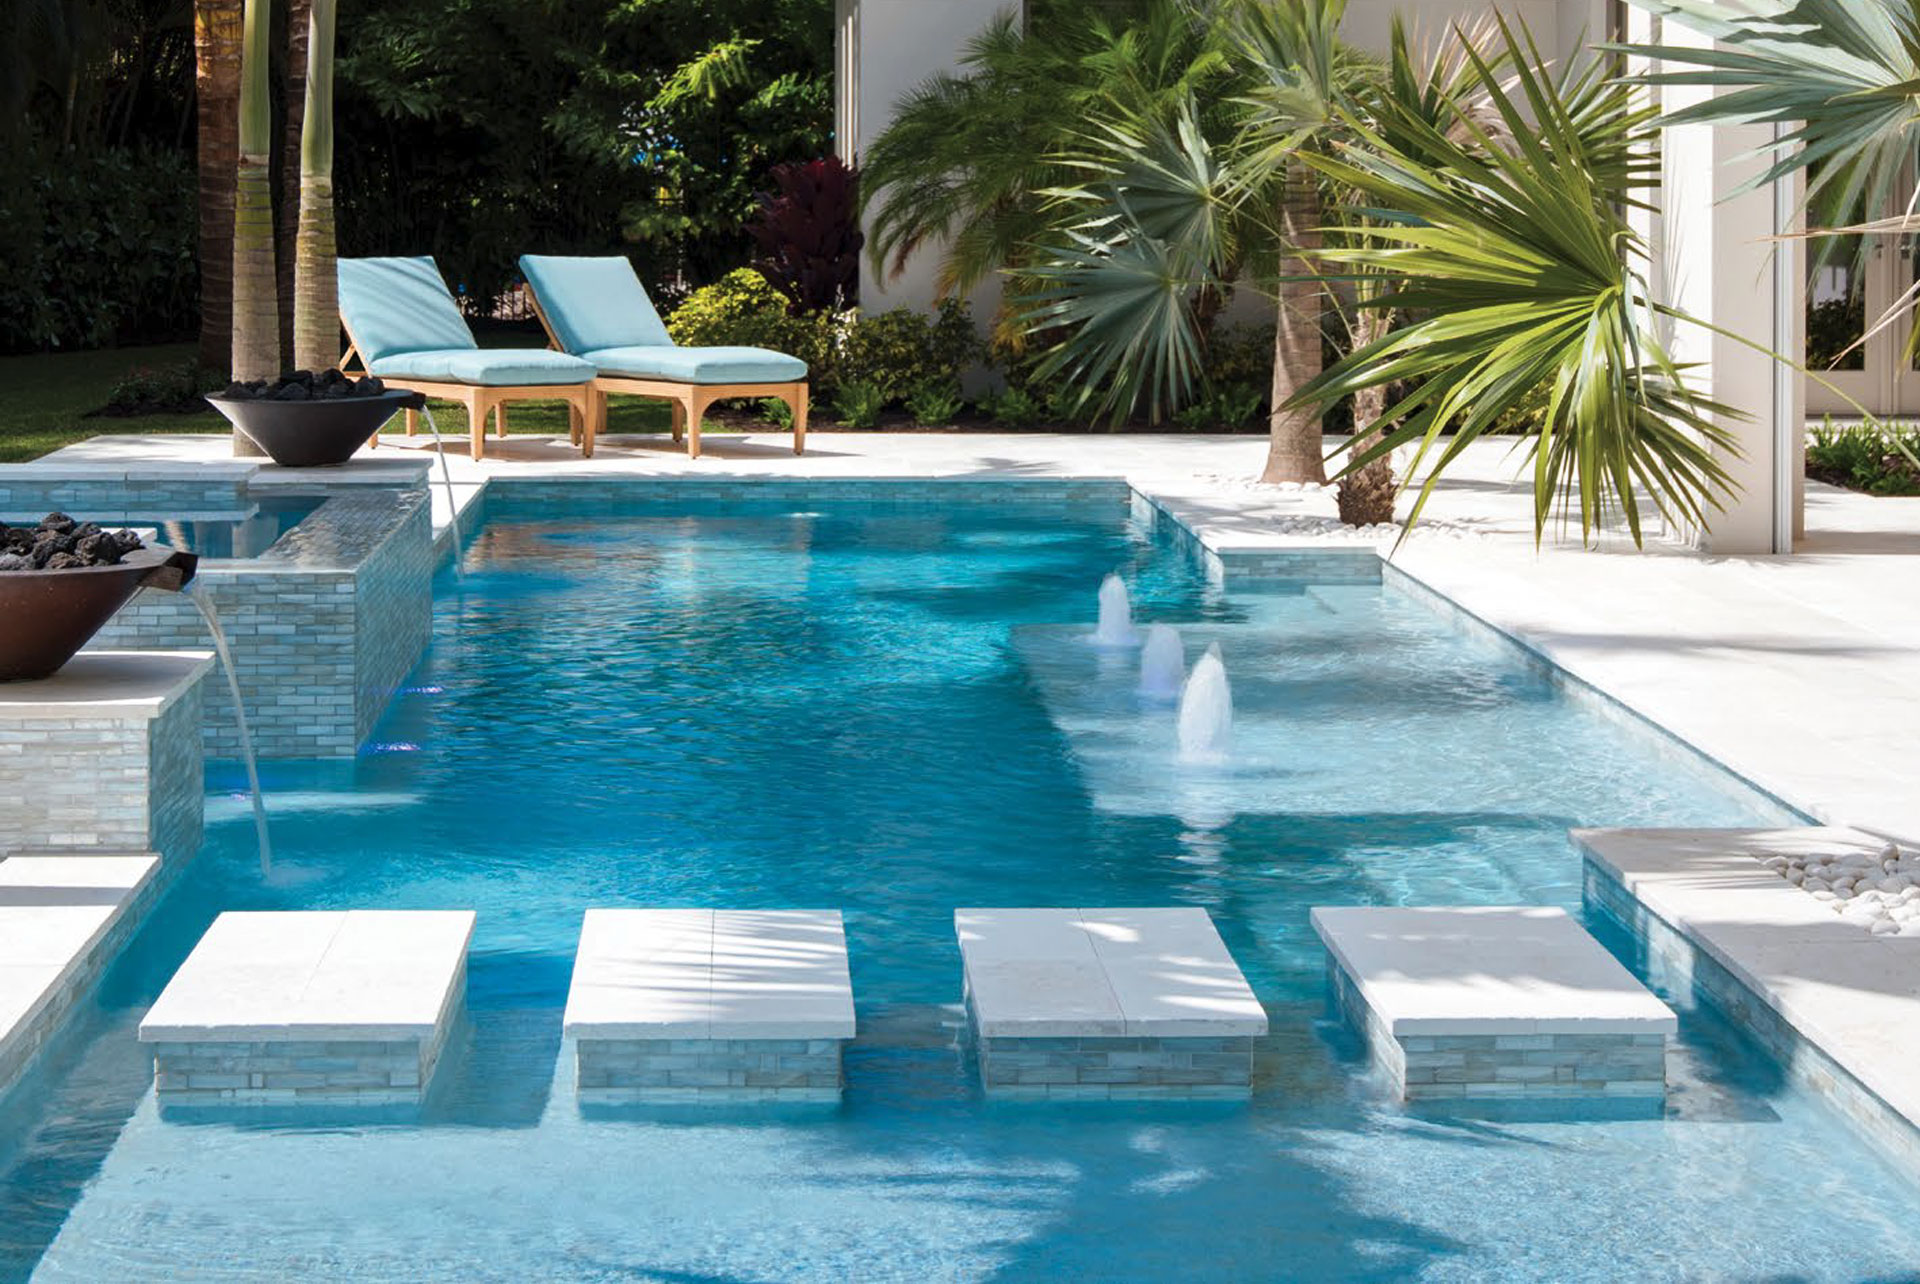 Calusa bay design florida design magazine creating for Pool design naples fl